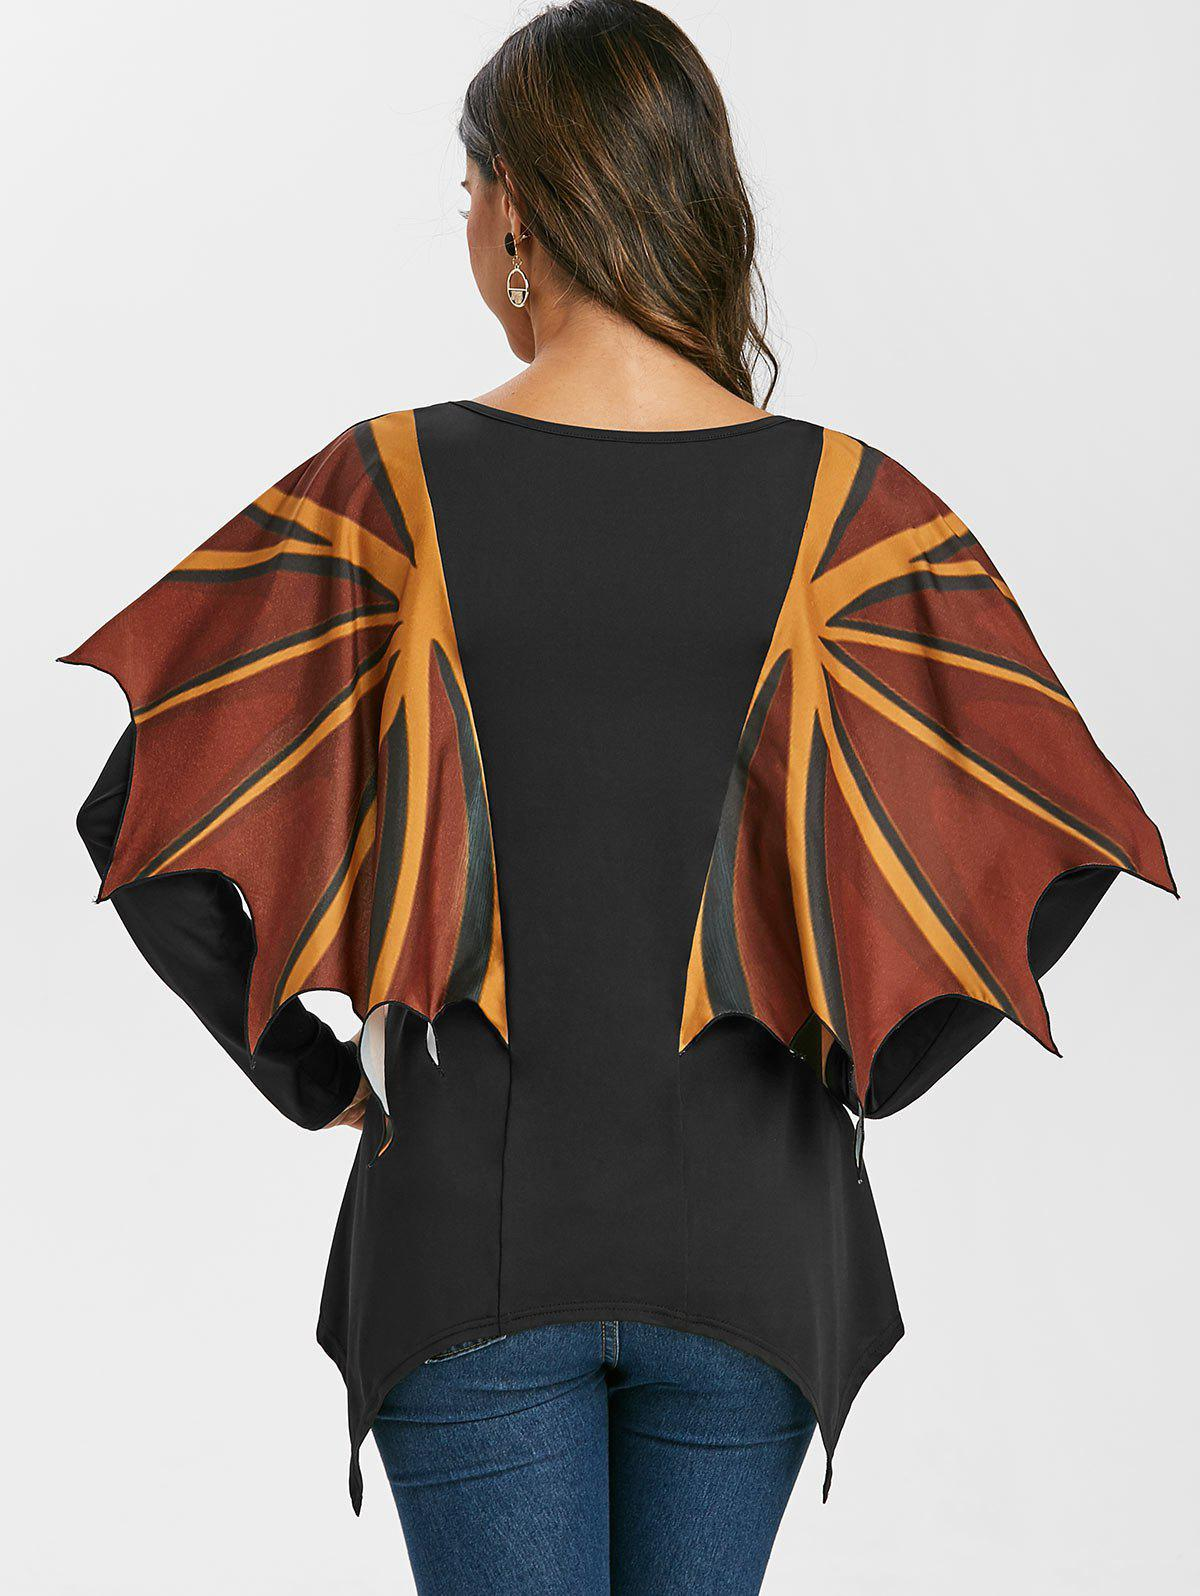 Asymmetric Long Sleee T Shirt with Wing